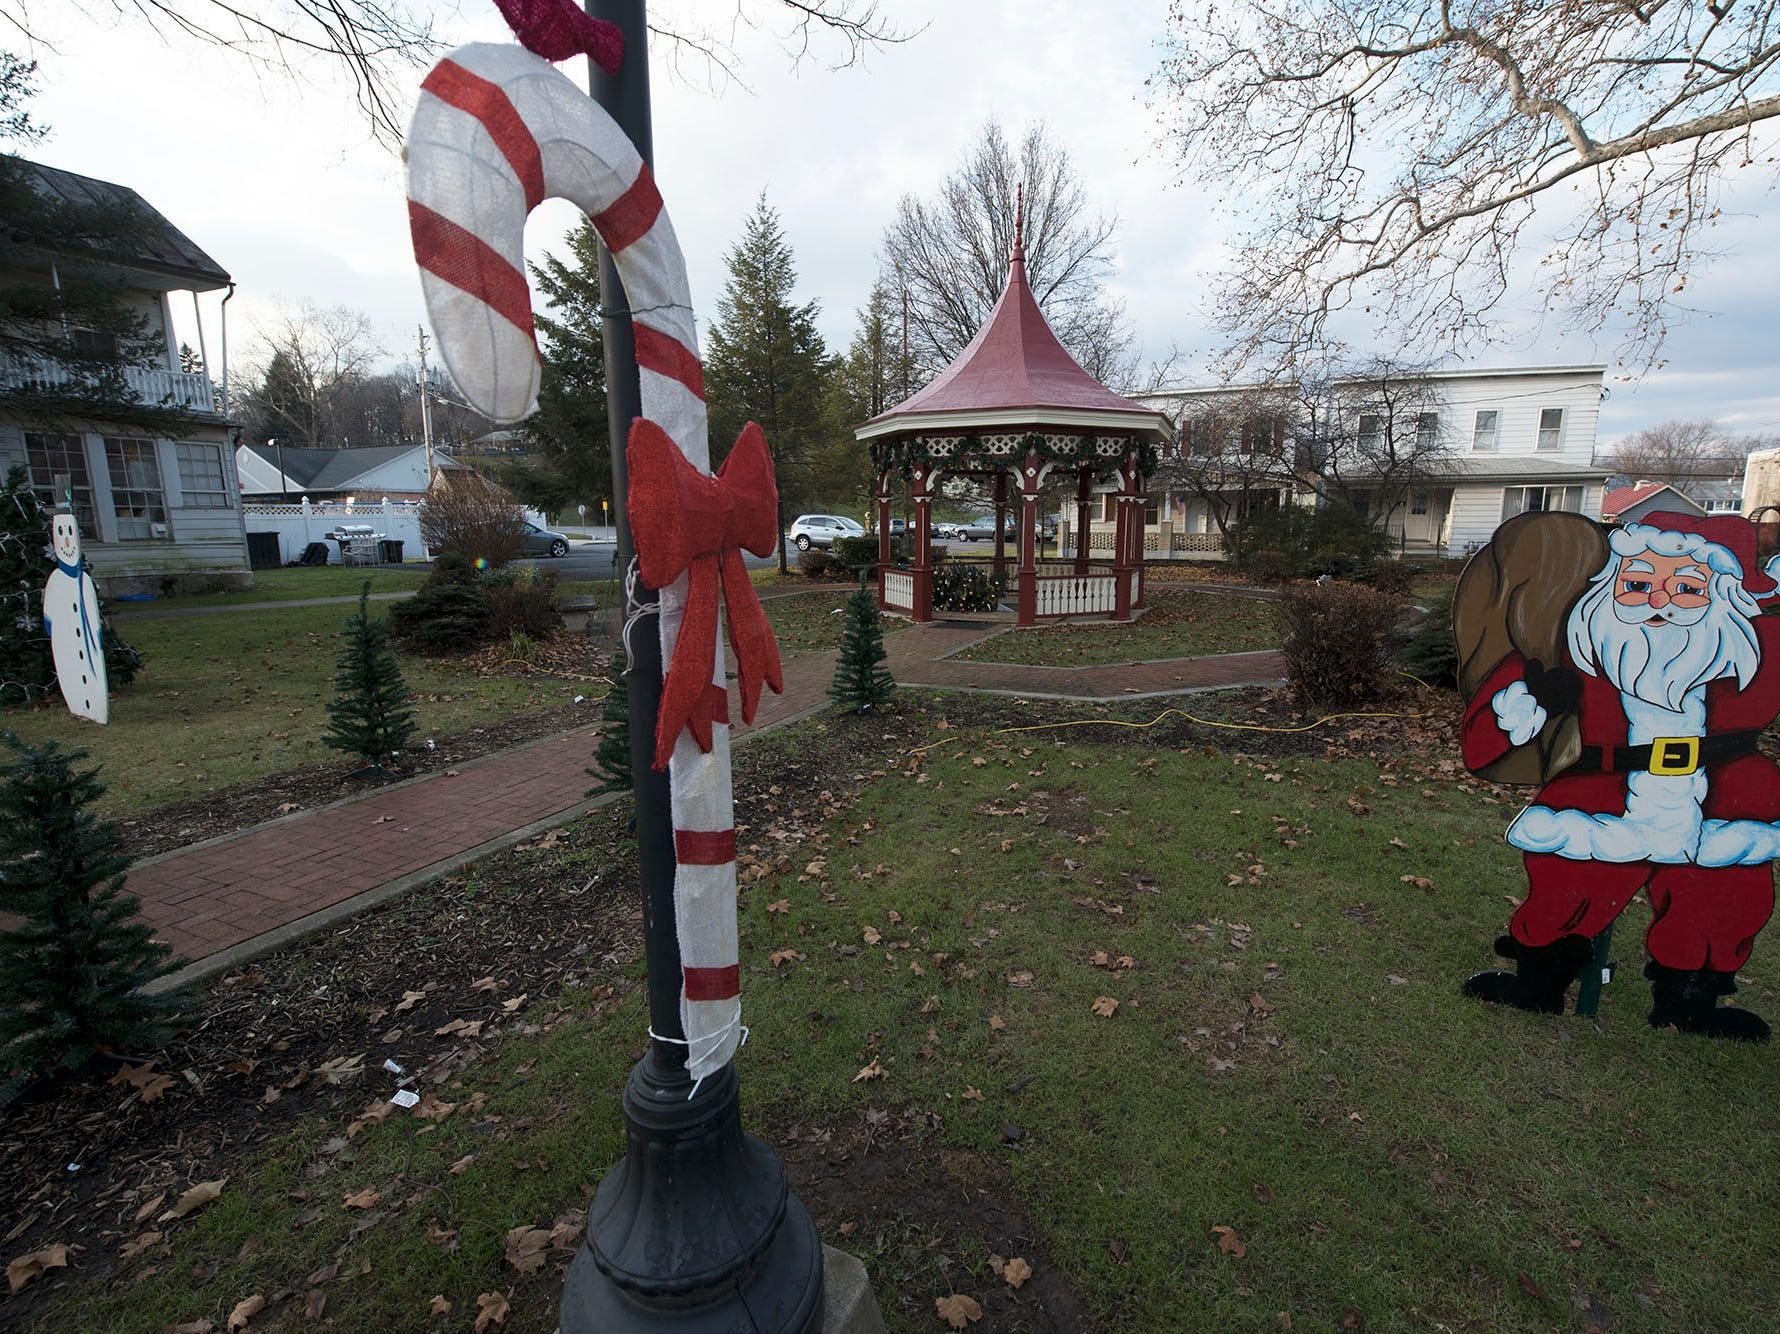 Spring Yard Gazebo is decorated for Christmas along King Street in Shippensburg.